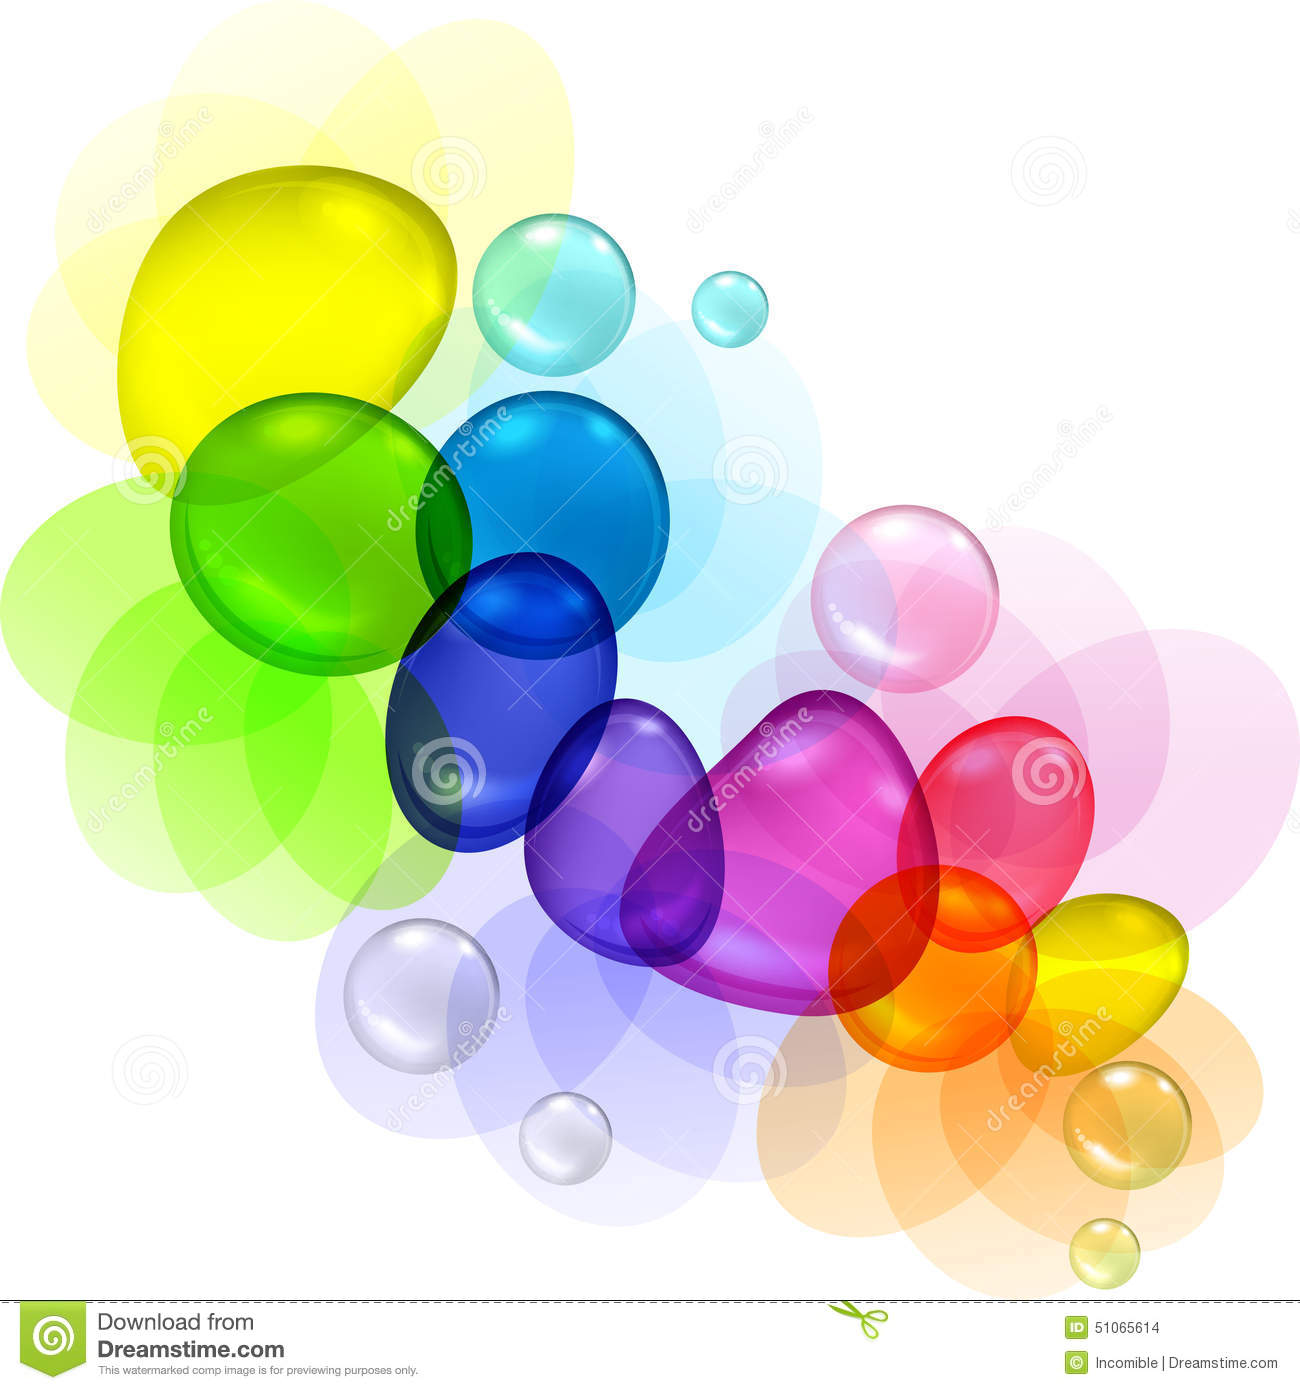 Drops Rainbow 3d Wallpaper Color Abstract With Transparent Bubbles And Drops Stock